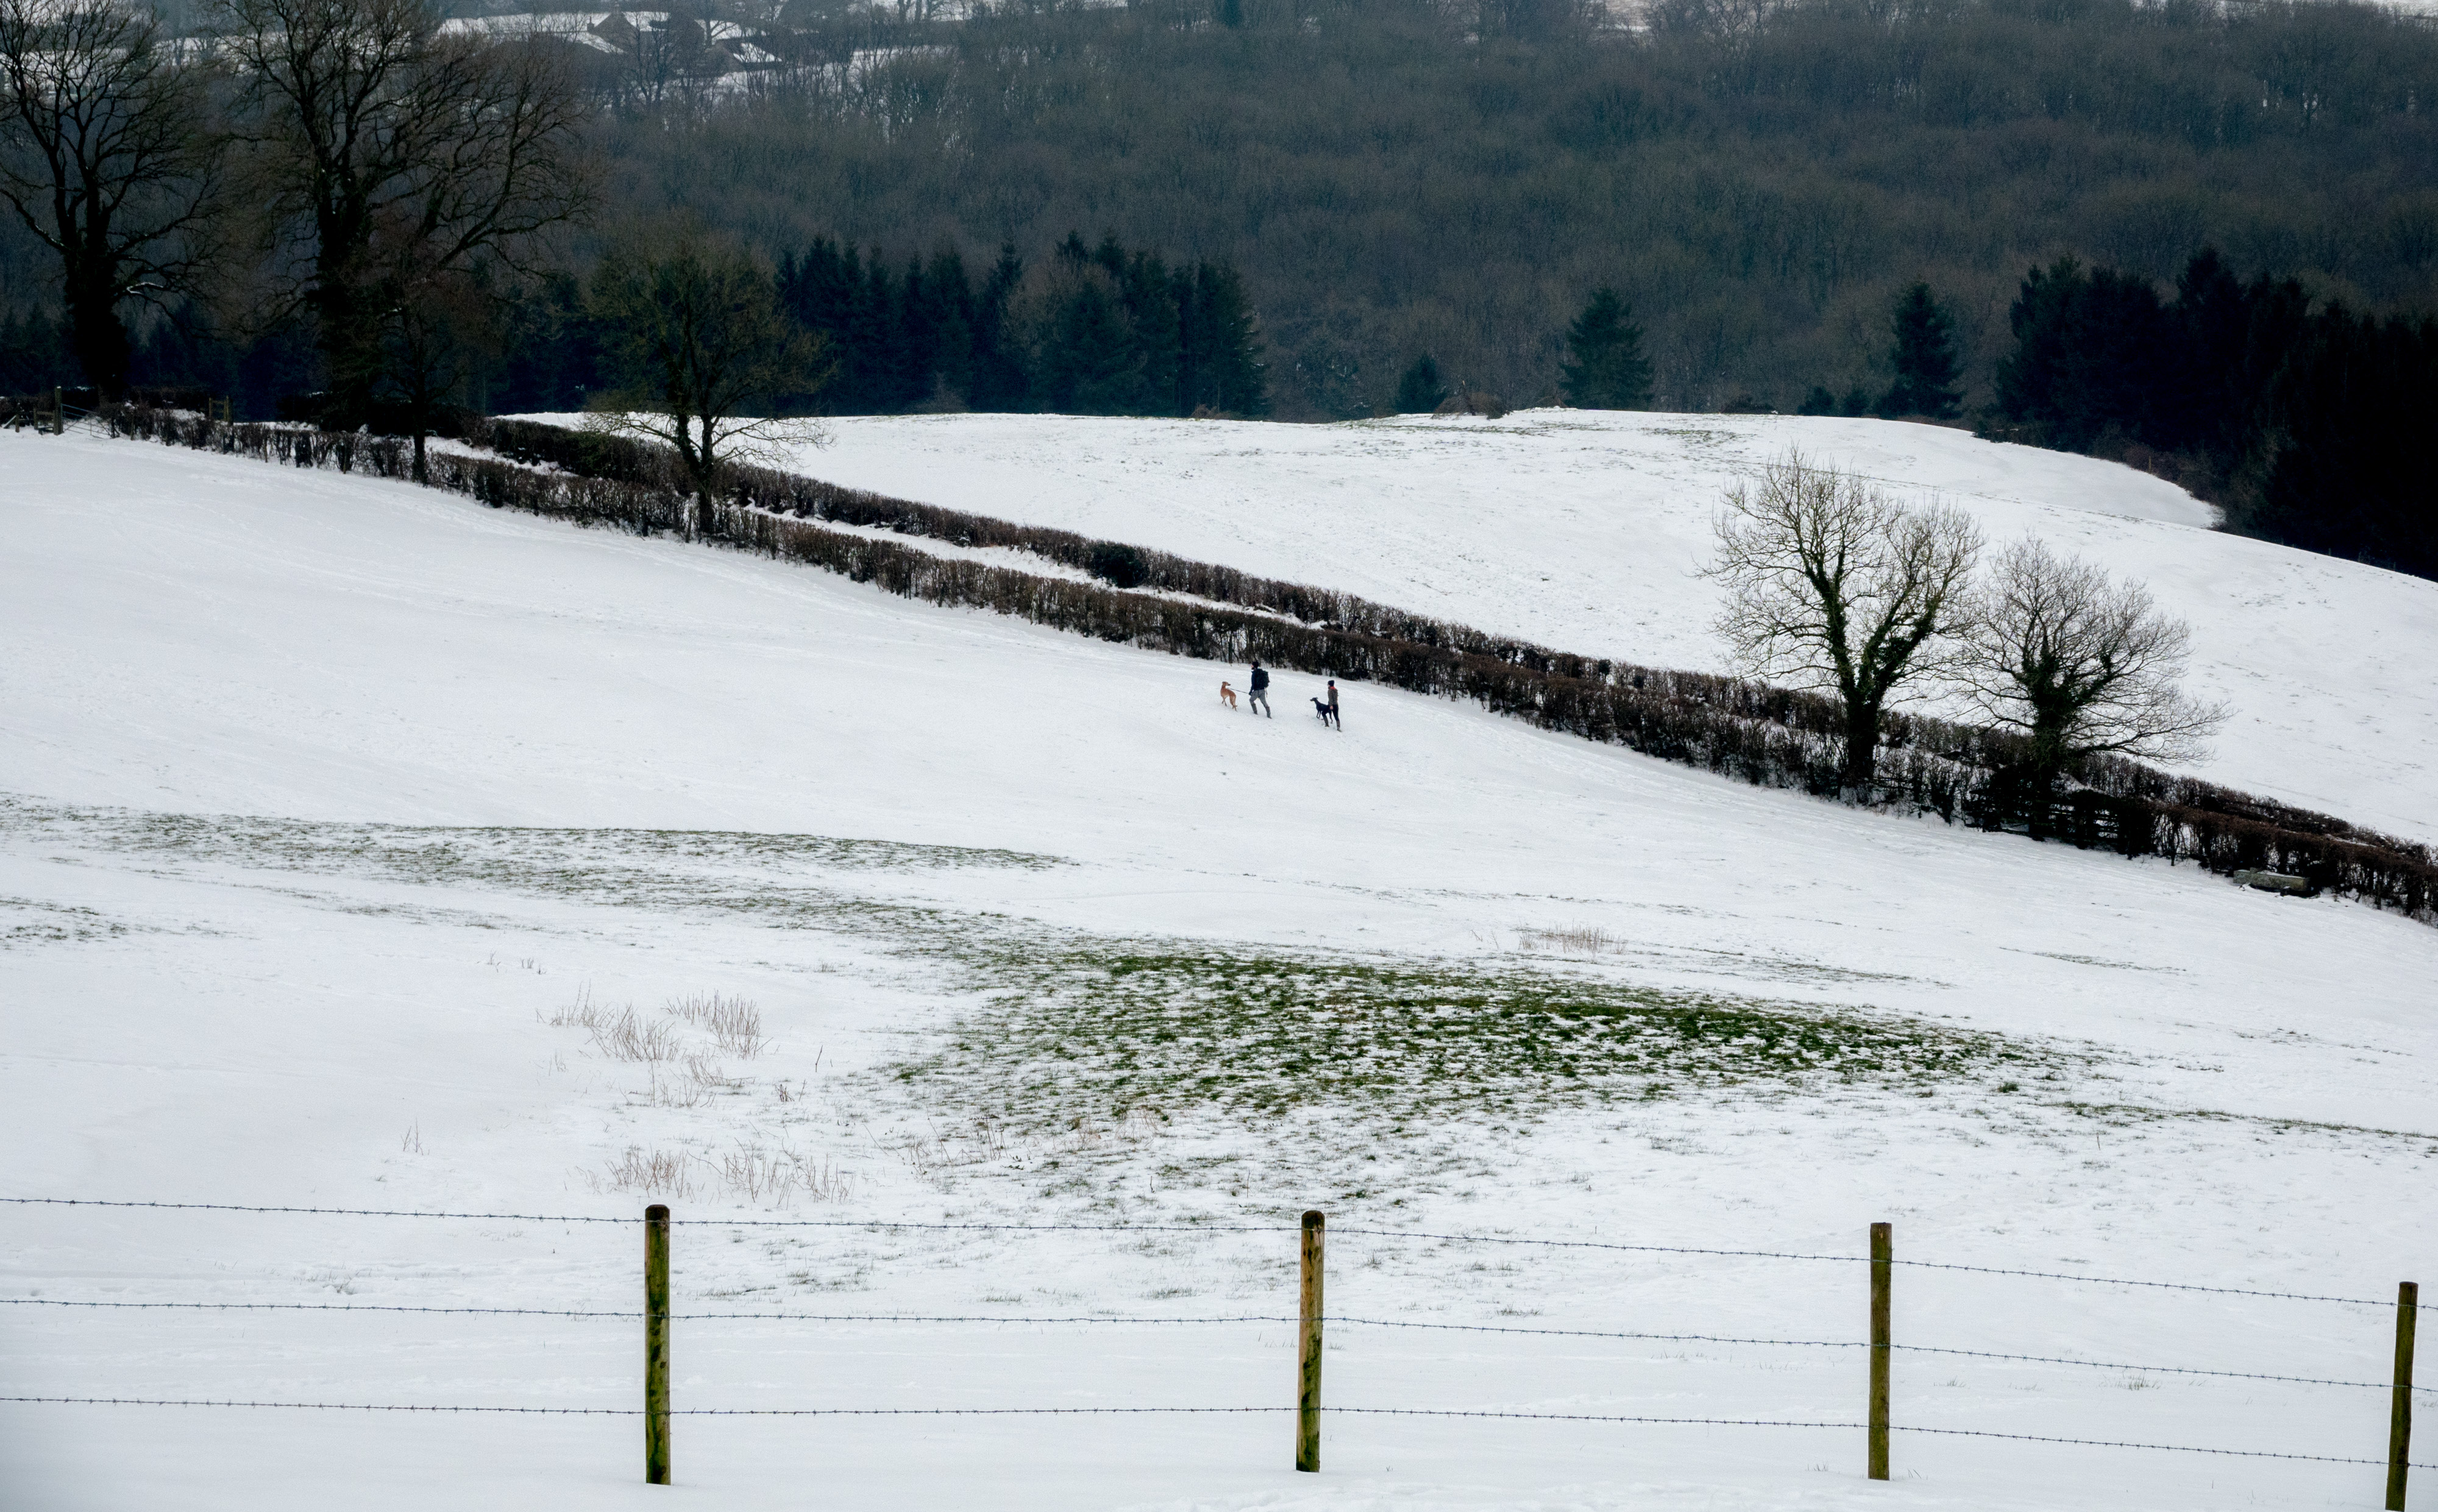 Beast from the East: More snow and cold weather to hit